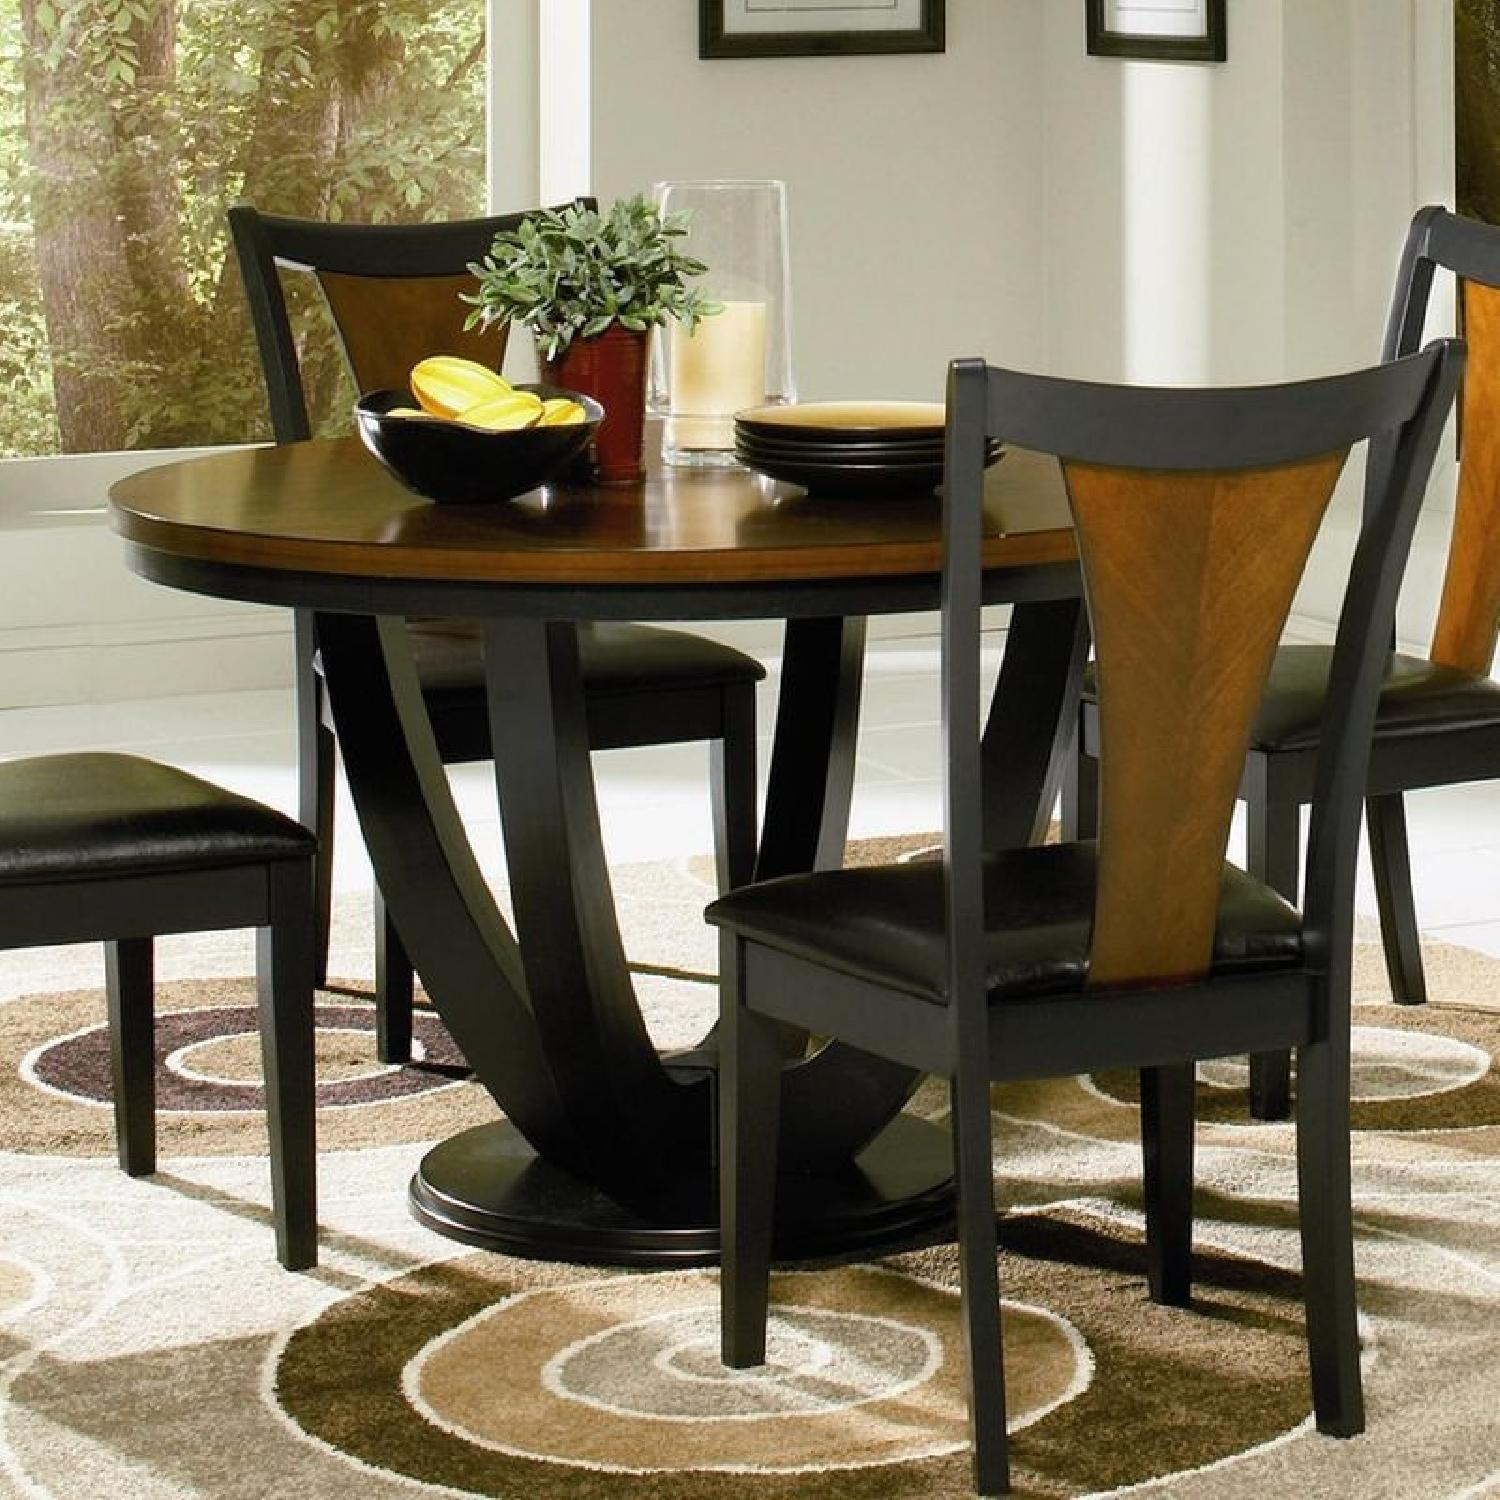 Bohemian Style Round Dining Table w/ Hand-Hammered Iron Top - image-13